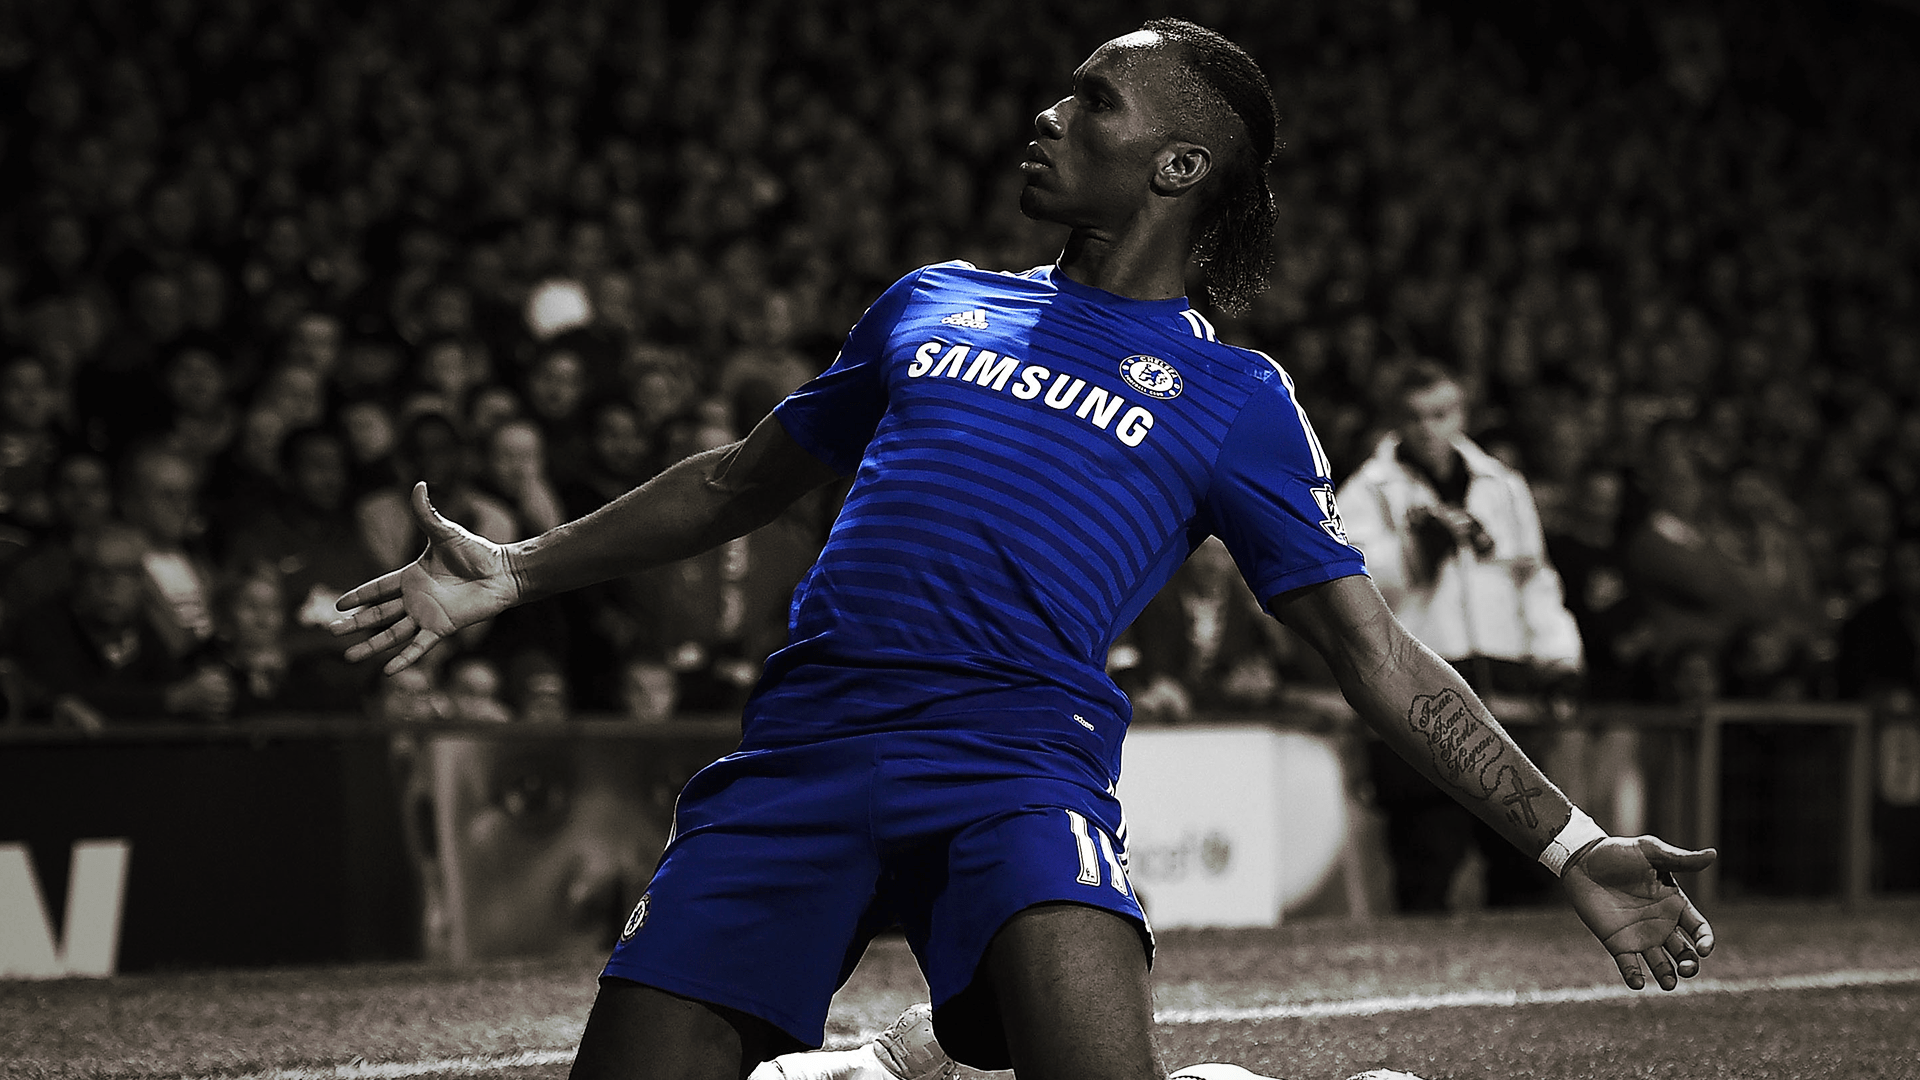 1920x1080 - Didier Drogba Wallpapers 22